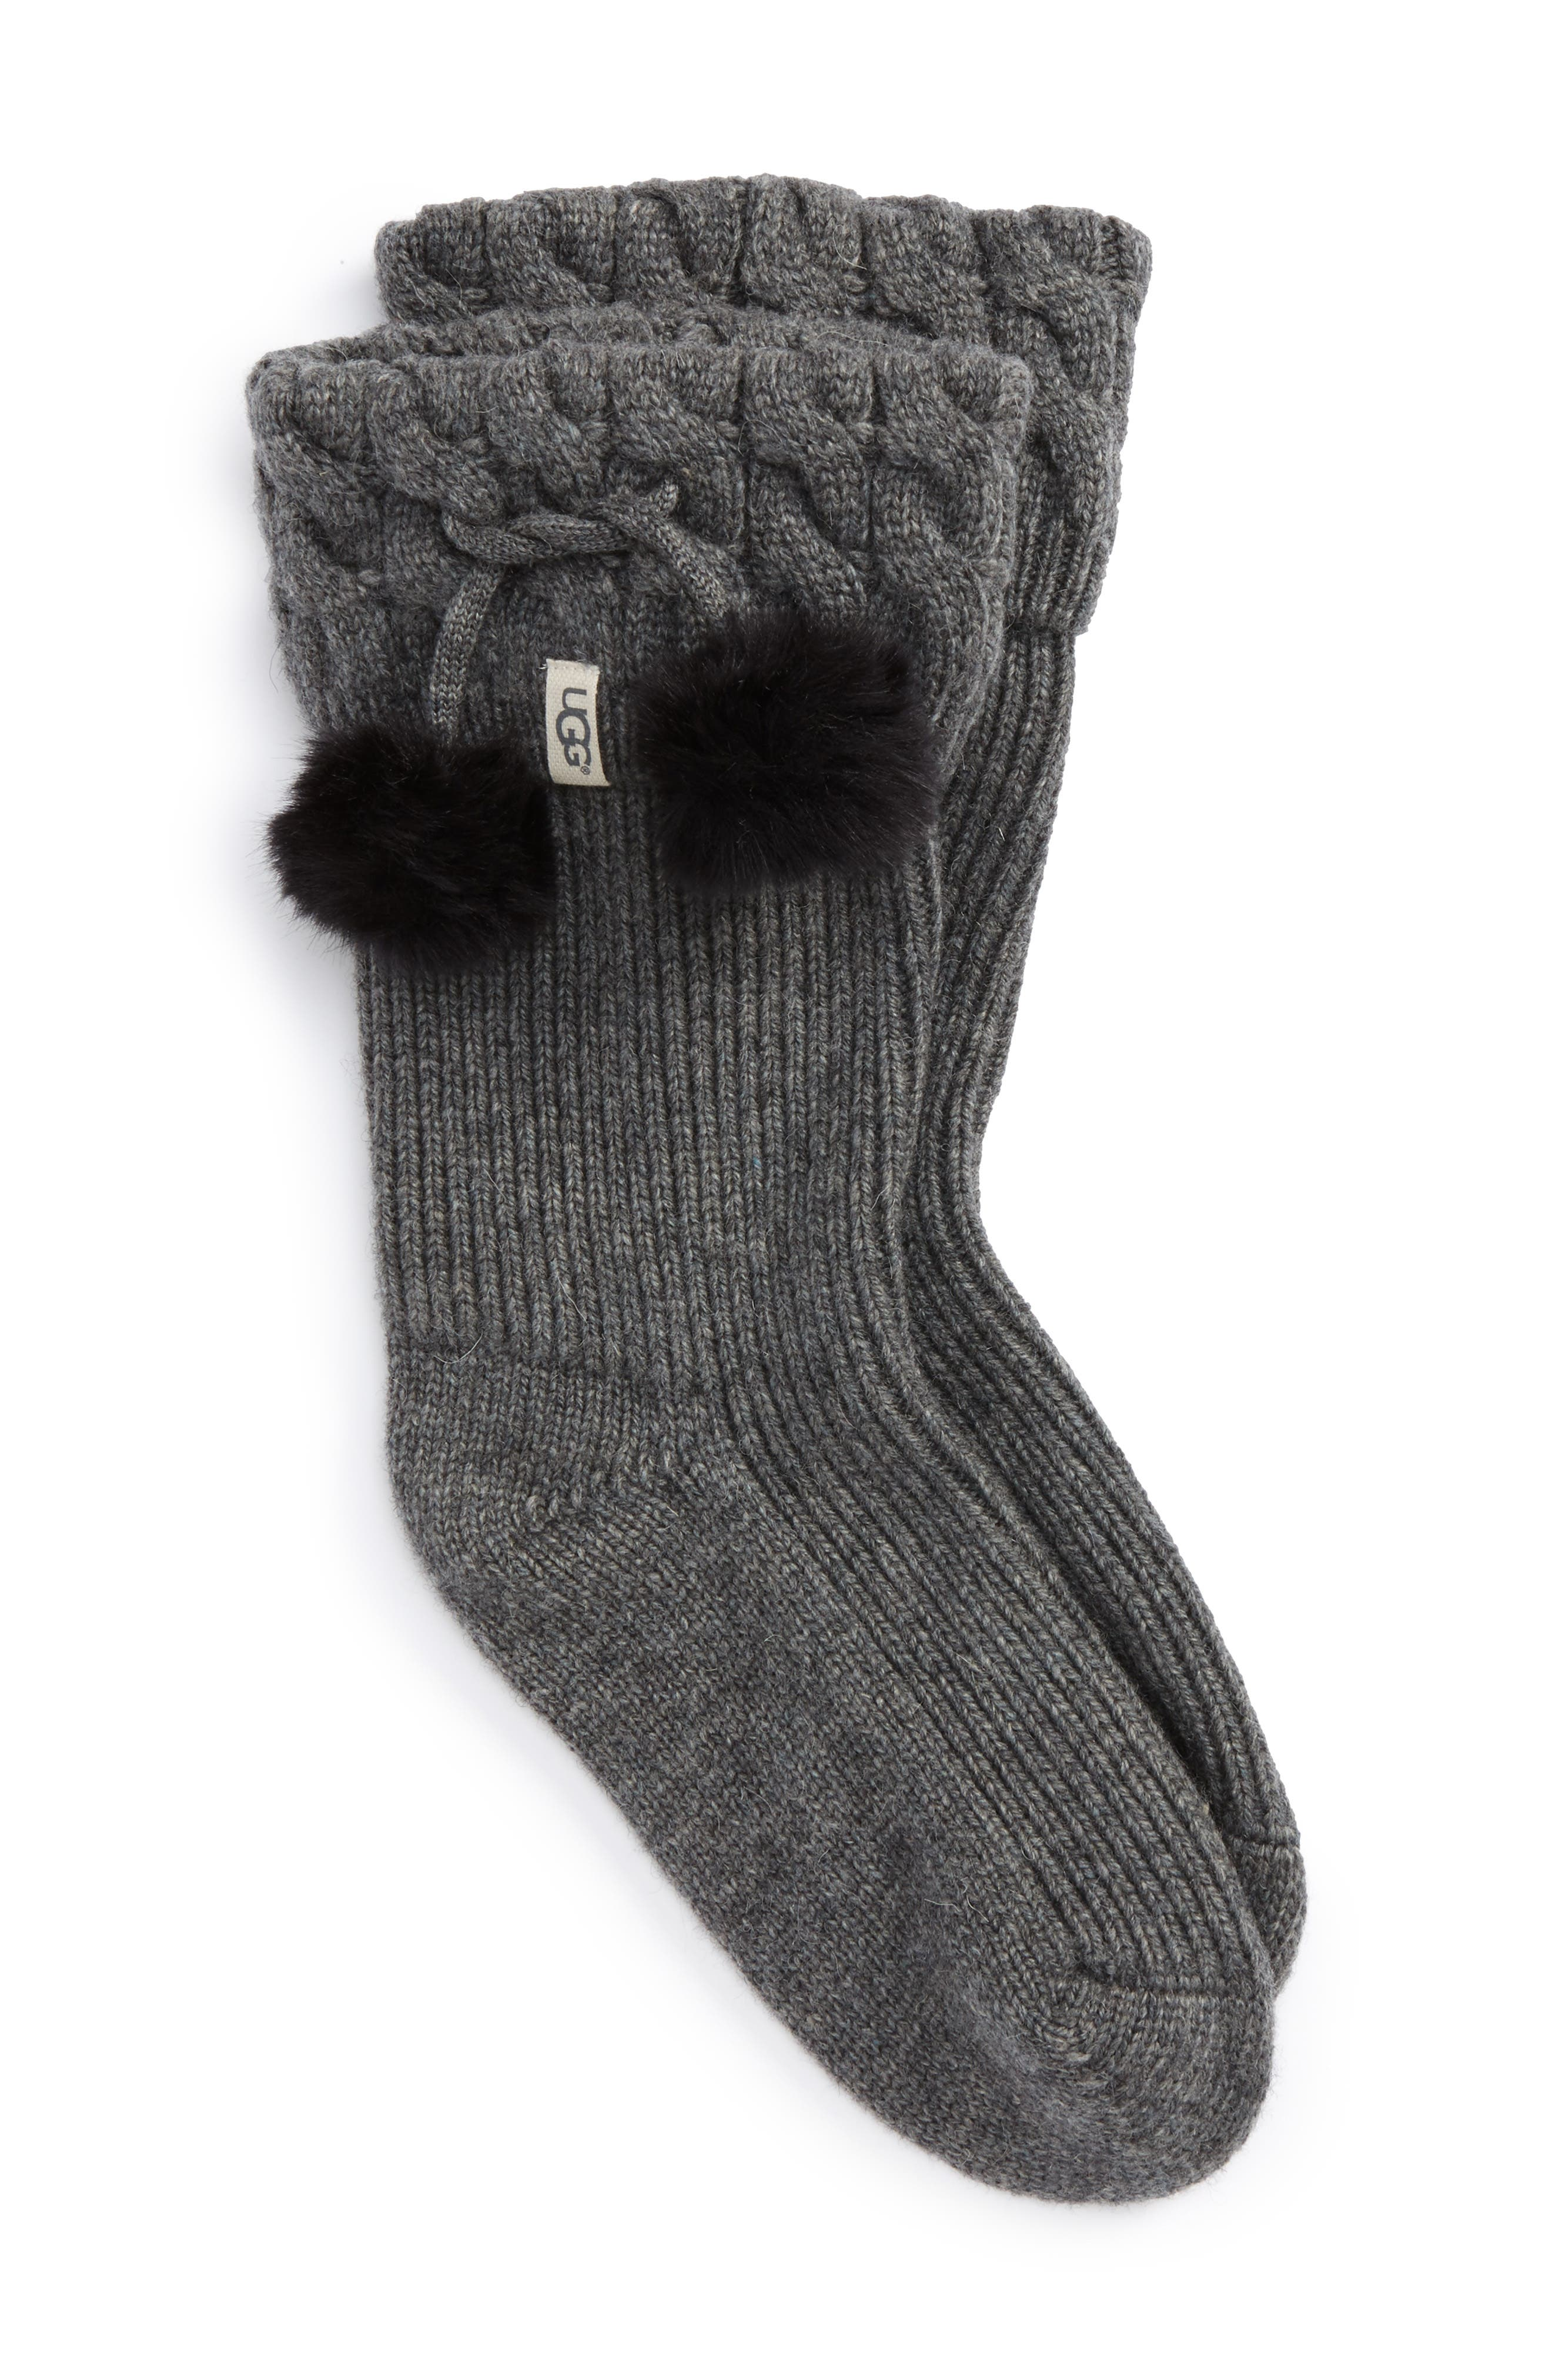 UGGpure<sup>™</sup> Pompom Short Rain Boot Sock,                         Main,                         color, Charcoal Heather Wool